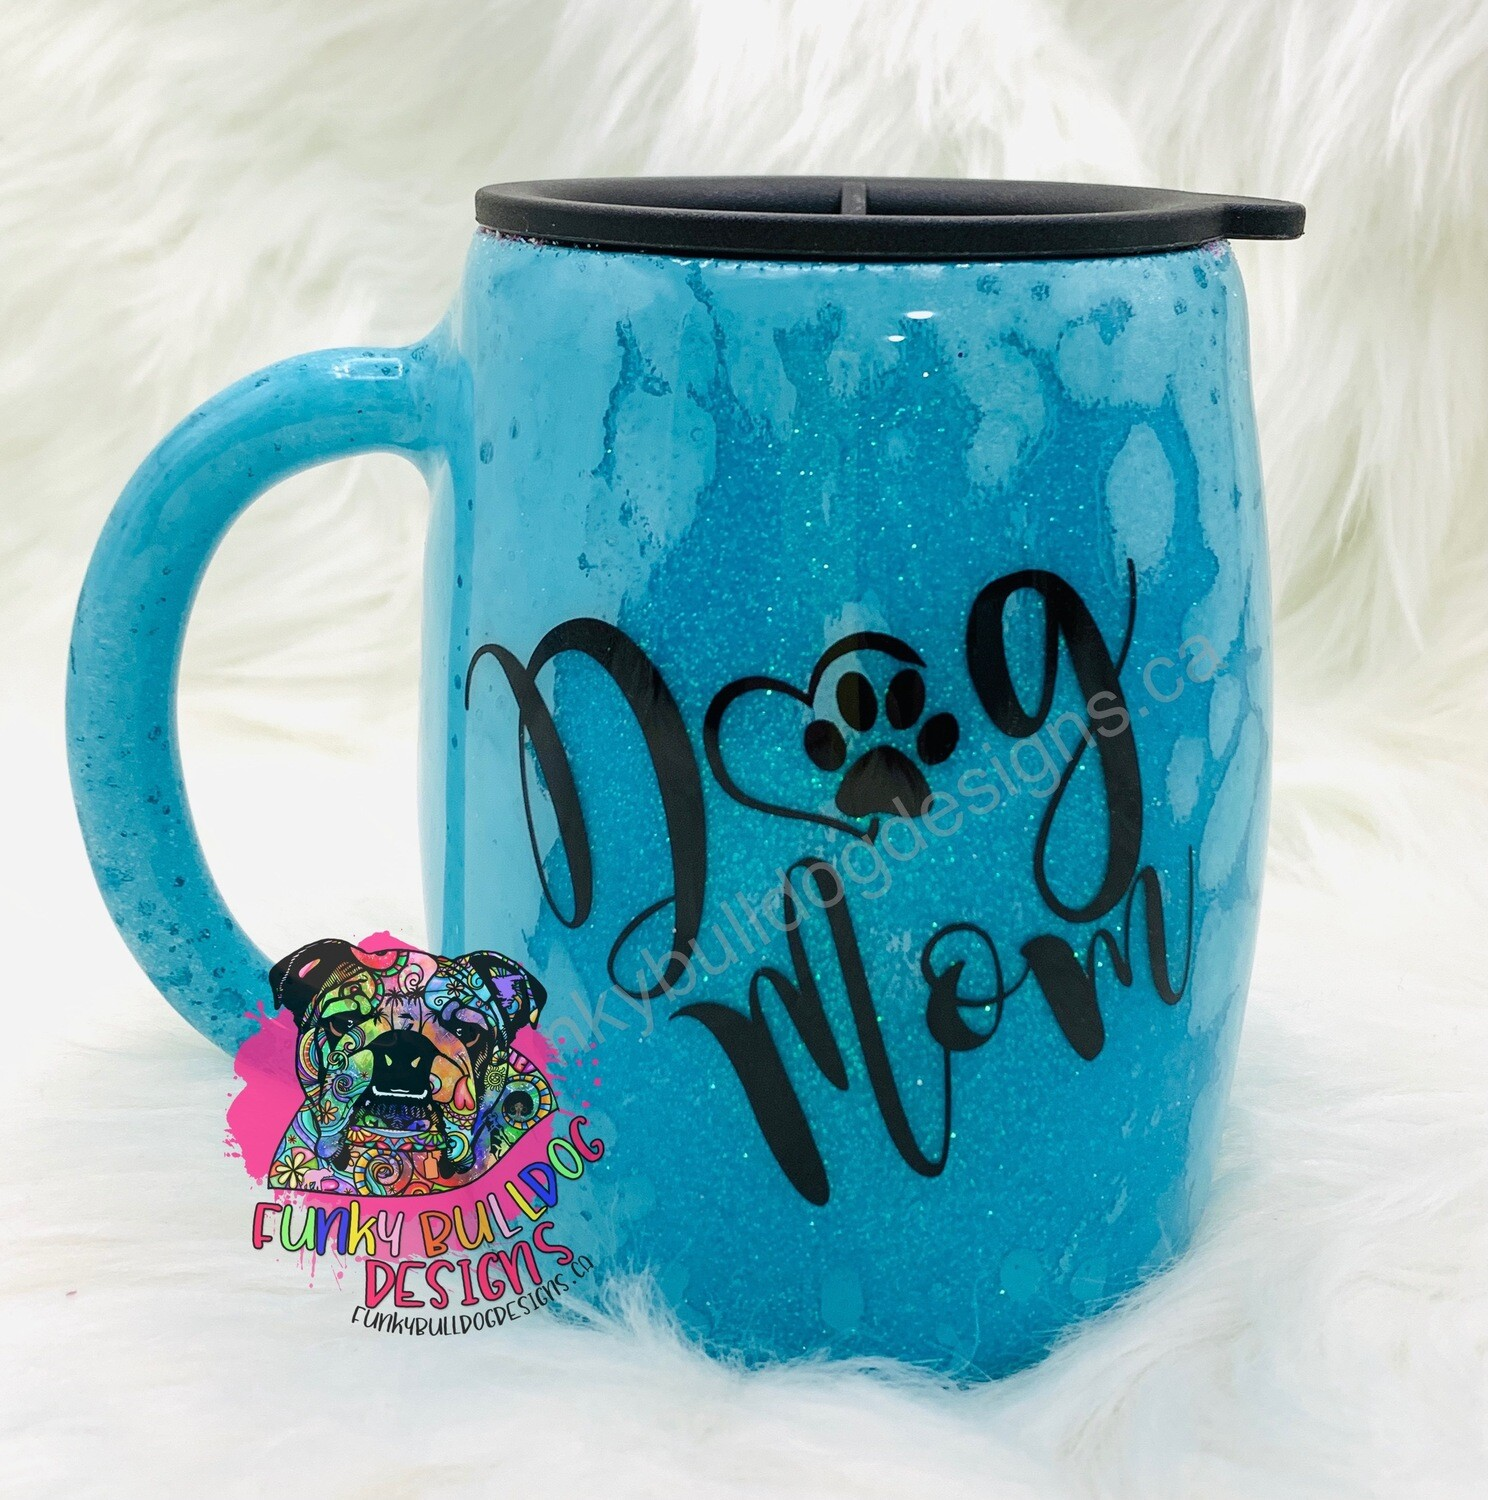 14oz stainless steel painted and glitter tumbler - Dog Mom